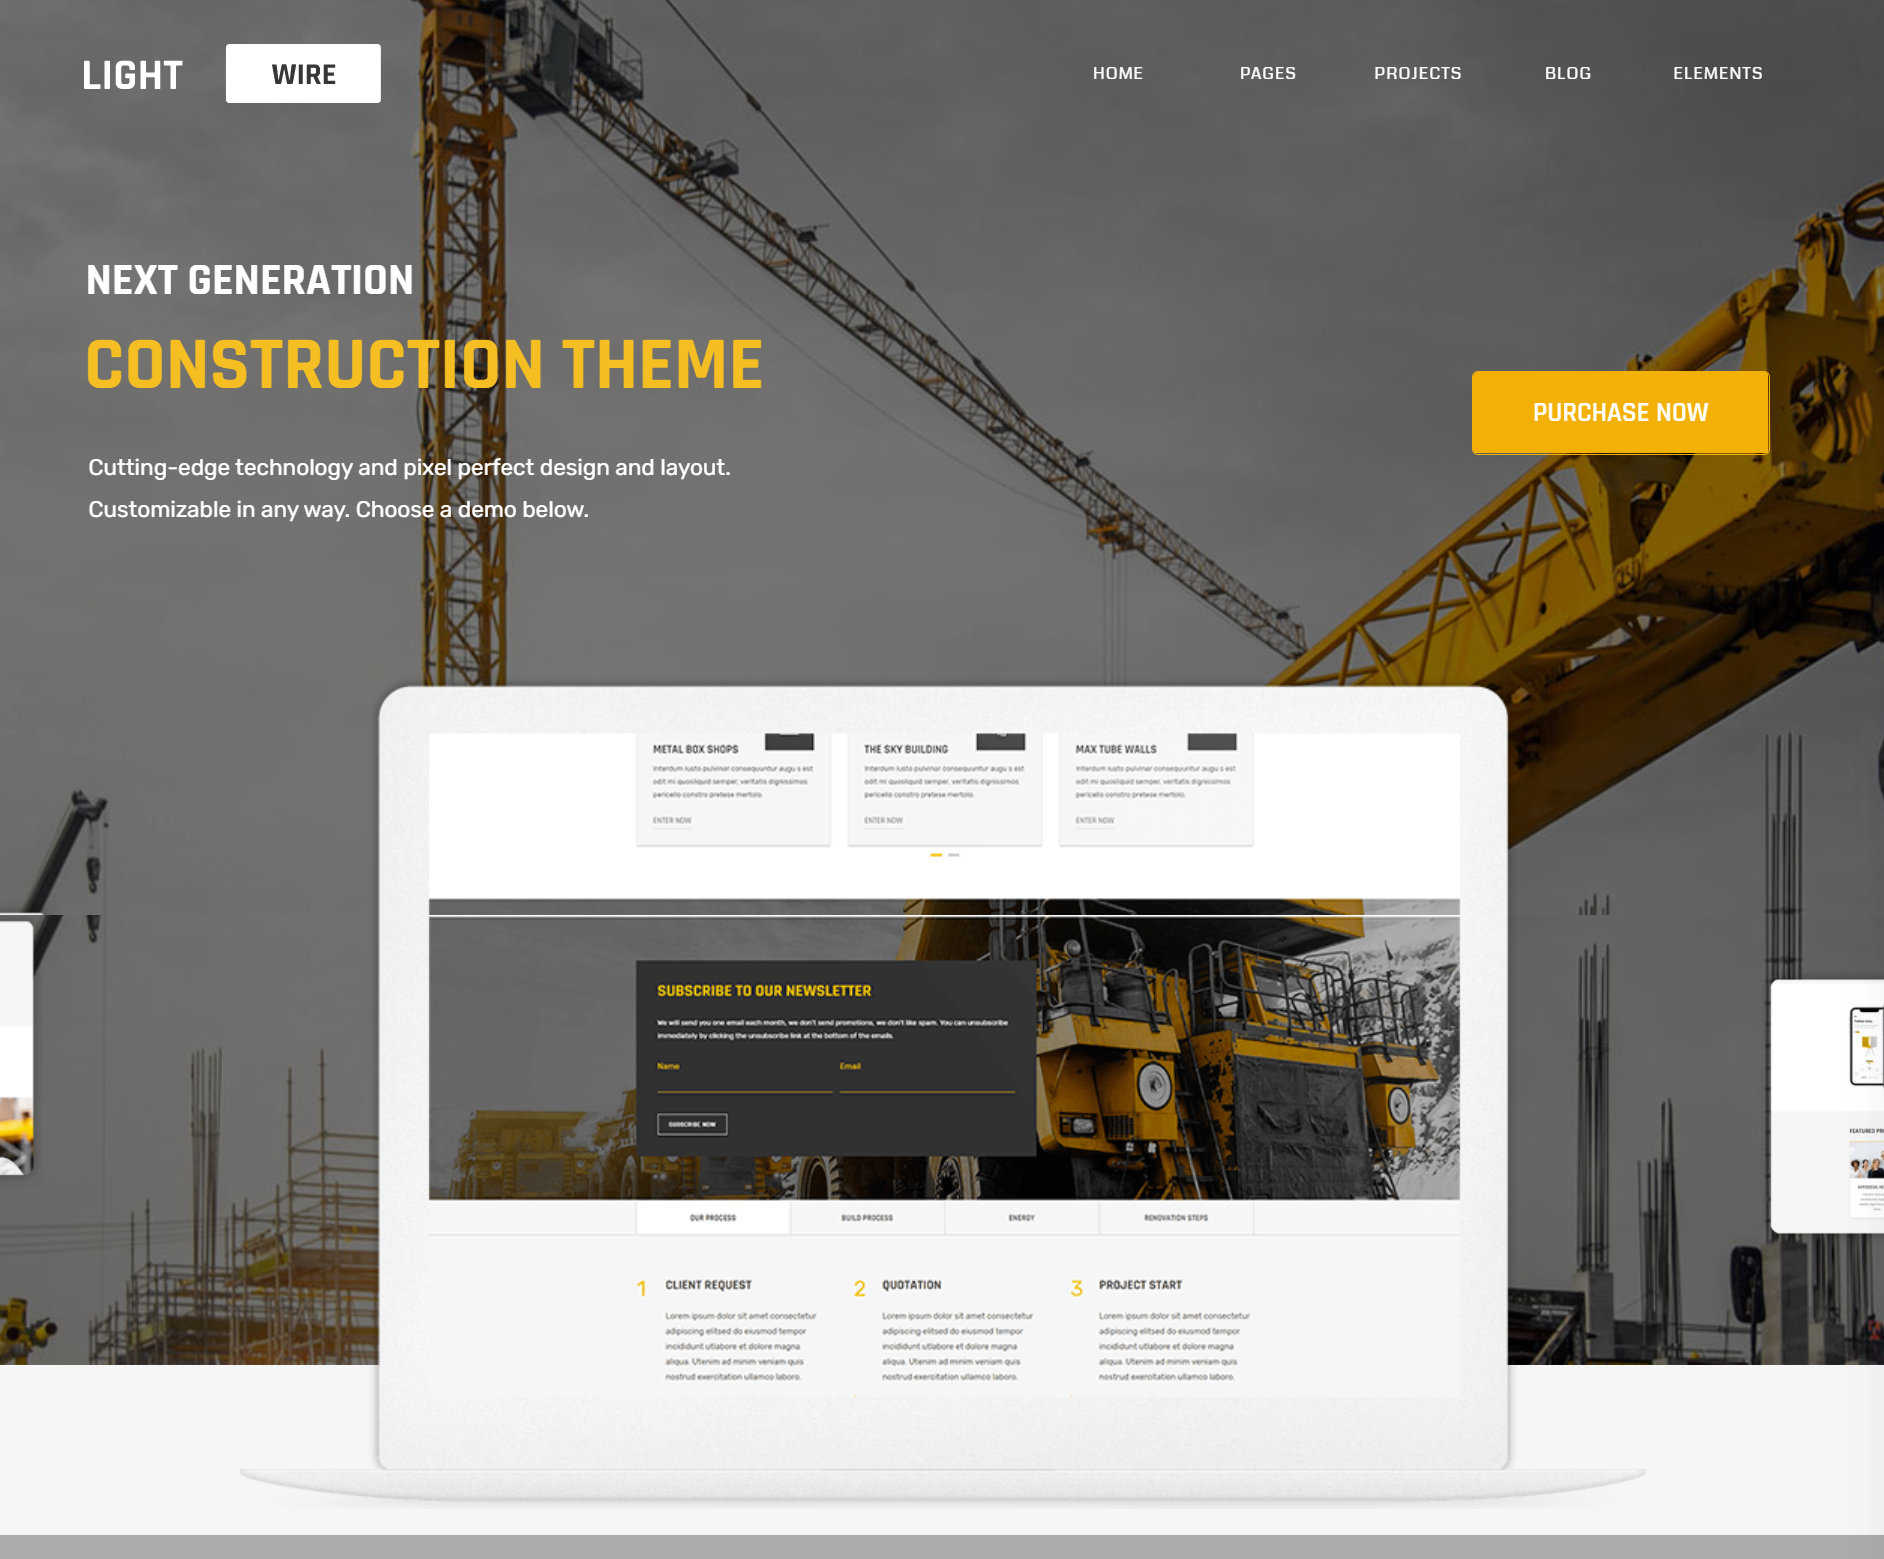 light wire pro theme for construction companies